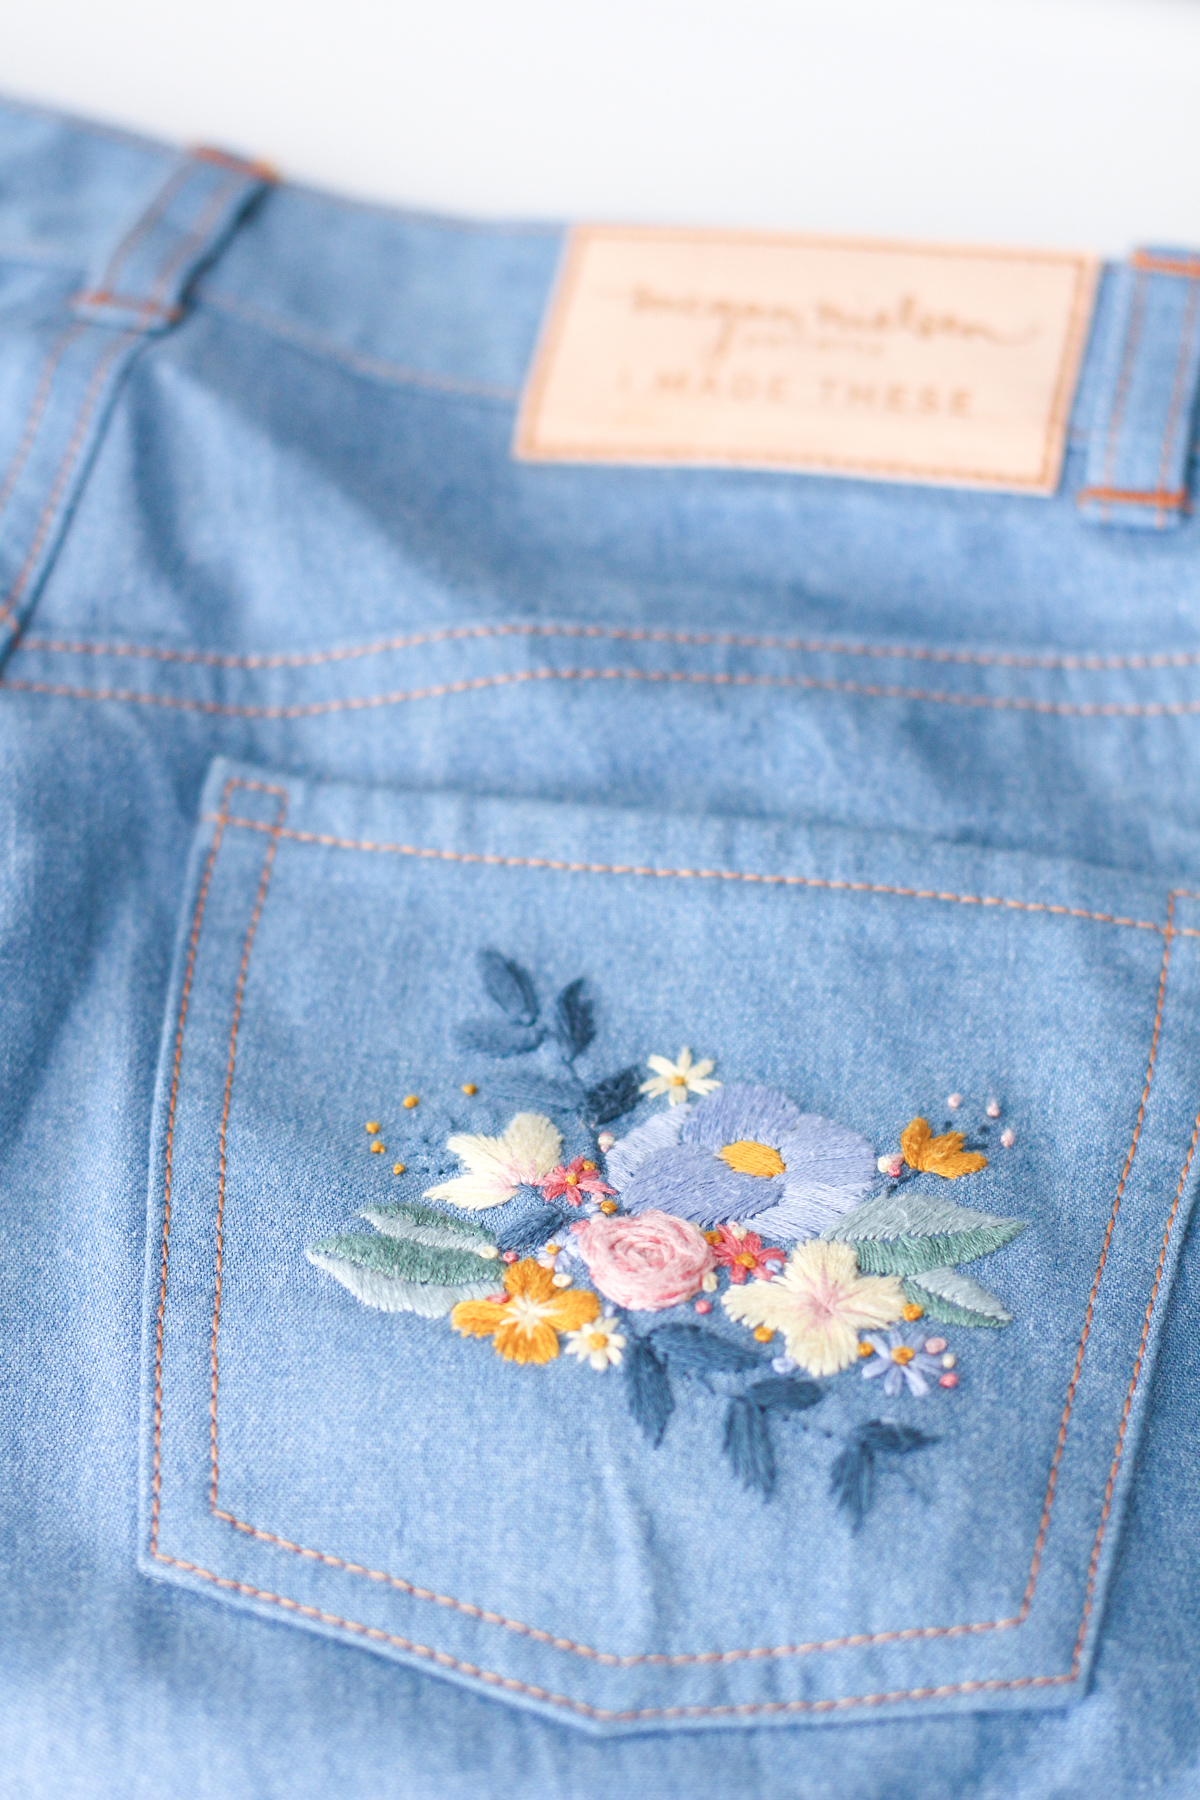 Tips for embroidering jeans // Megan Nielsen Design Diary